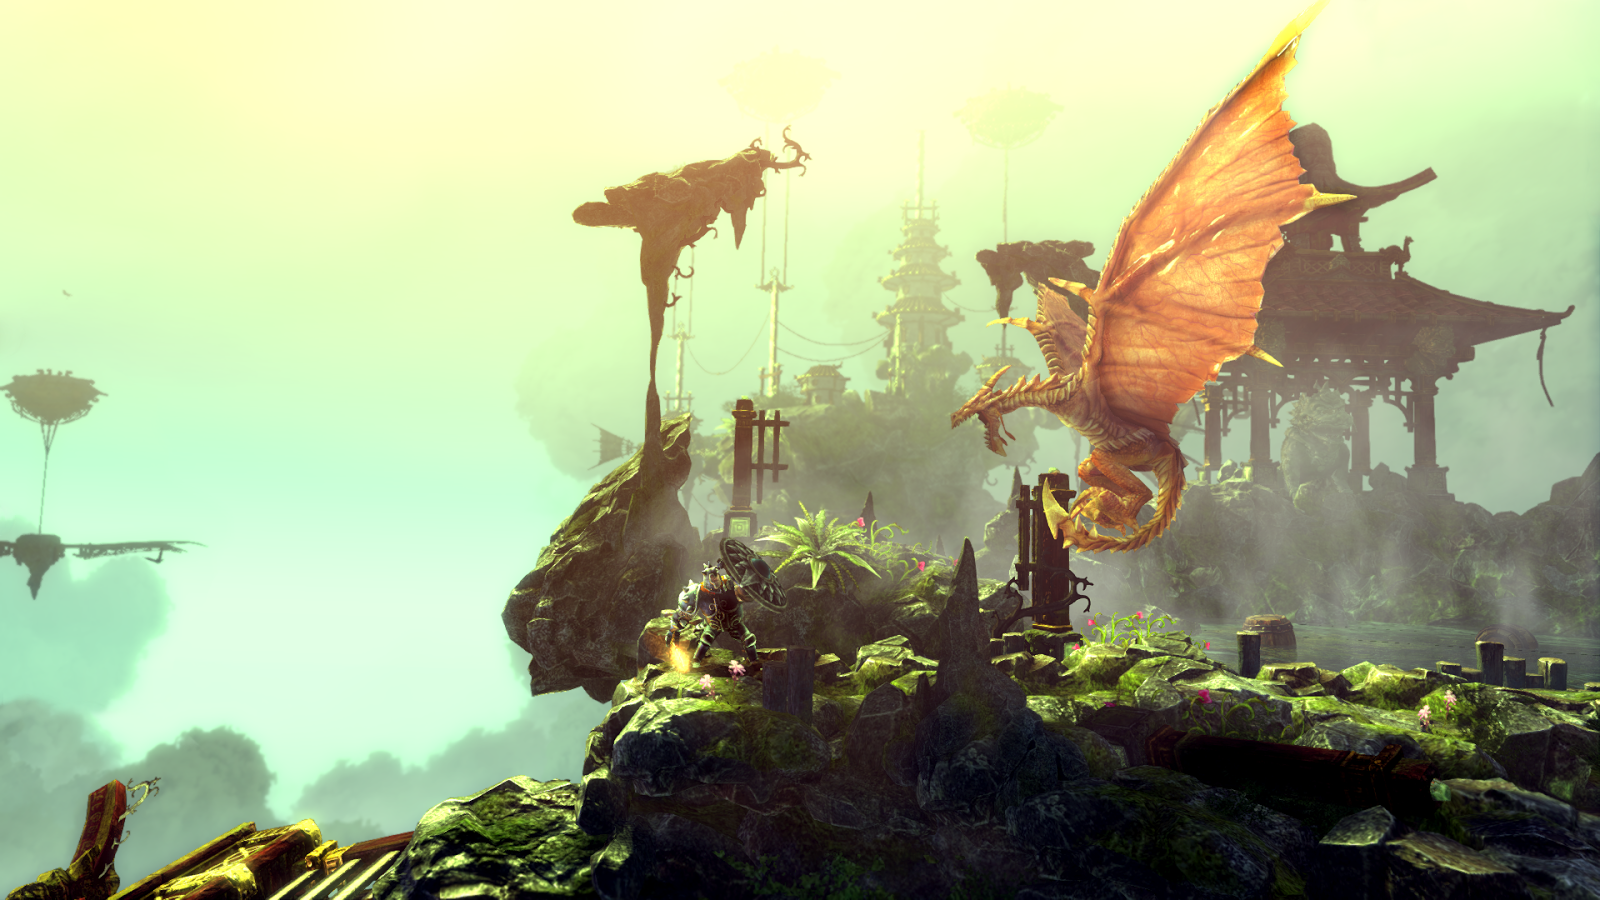 trine 2 complete story android apps on google play trine 2 complete story screenshot